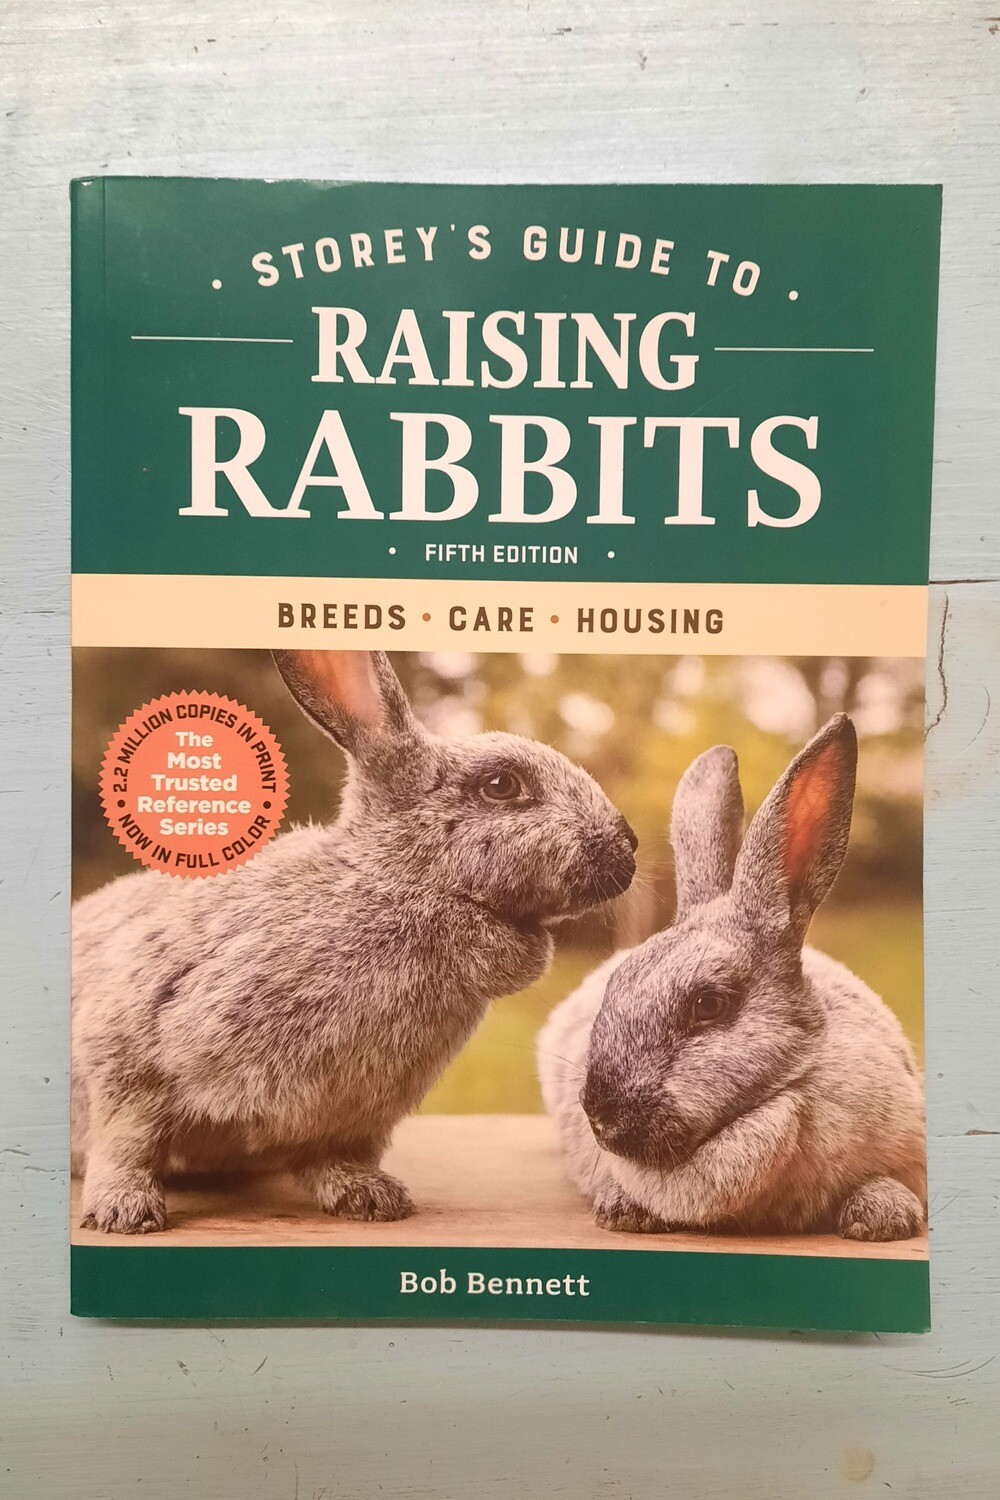 Storey's Guide to Raising Rabbits, by Bob Bennett